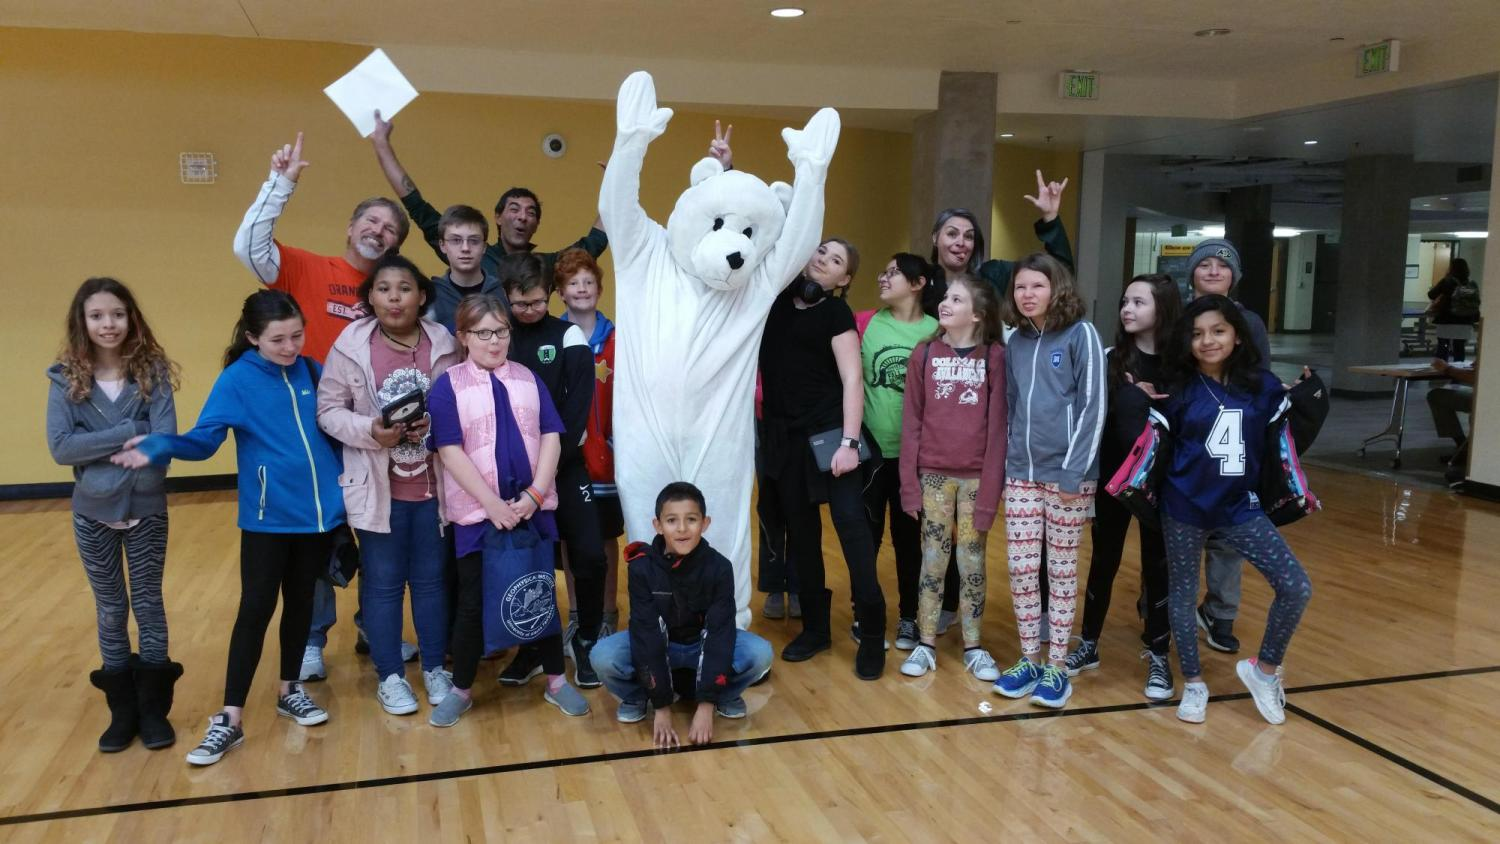 cu boulder hosts k-12 students to connect climate and sports | cu